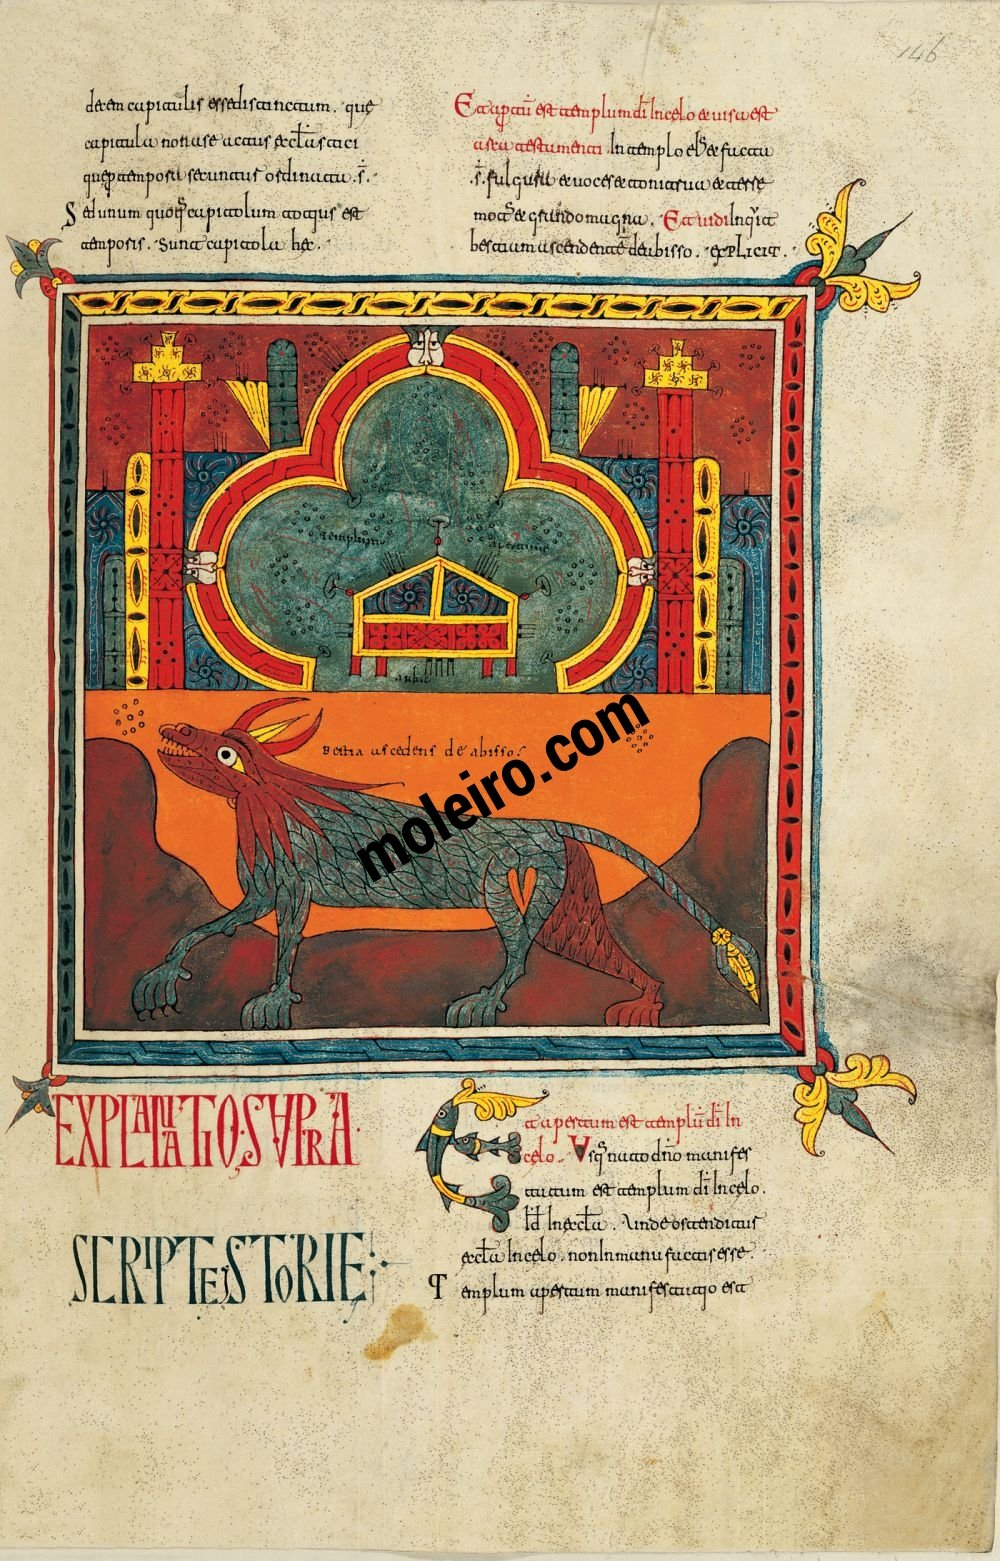 Silos Beatus f. 146r, The Temple with the Ark of the Alliance and the beast arising from the abyss